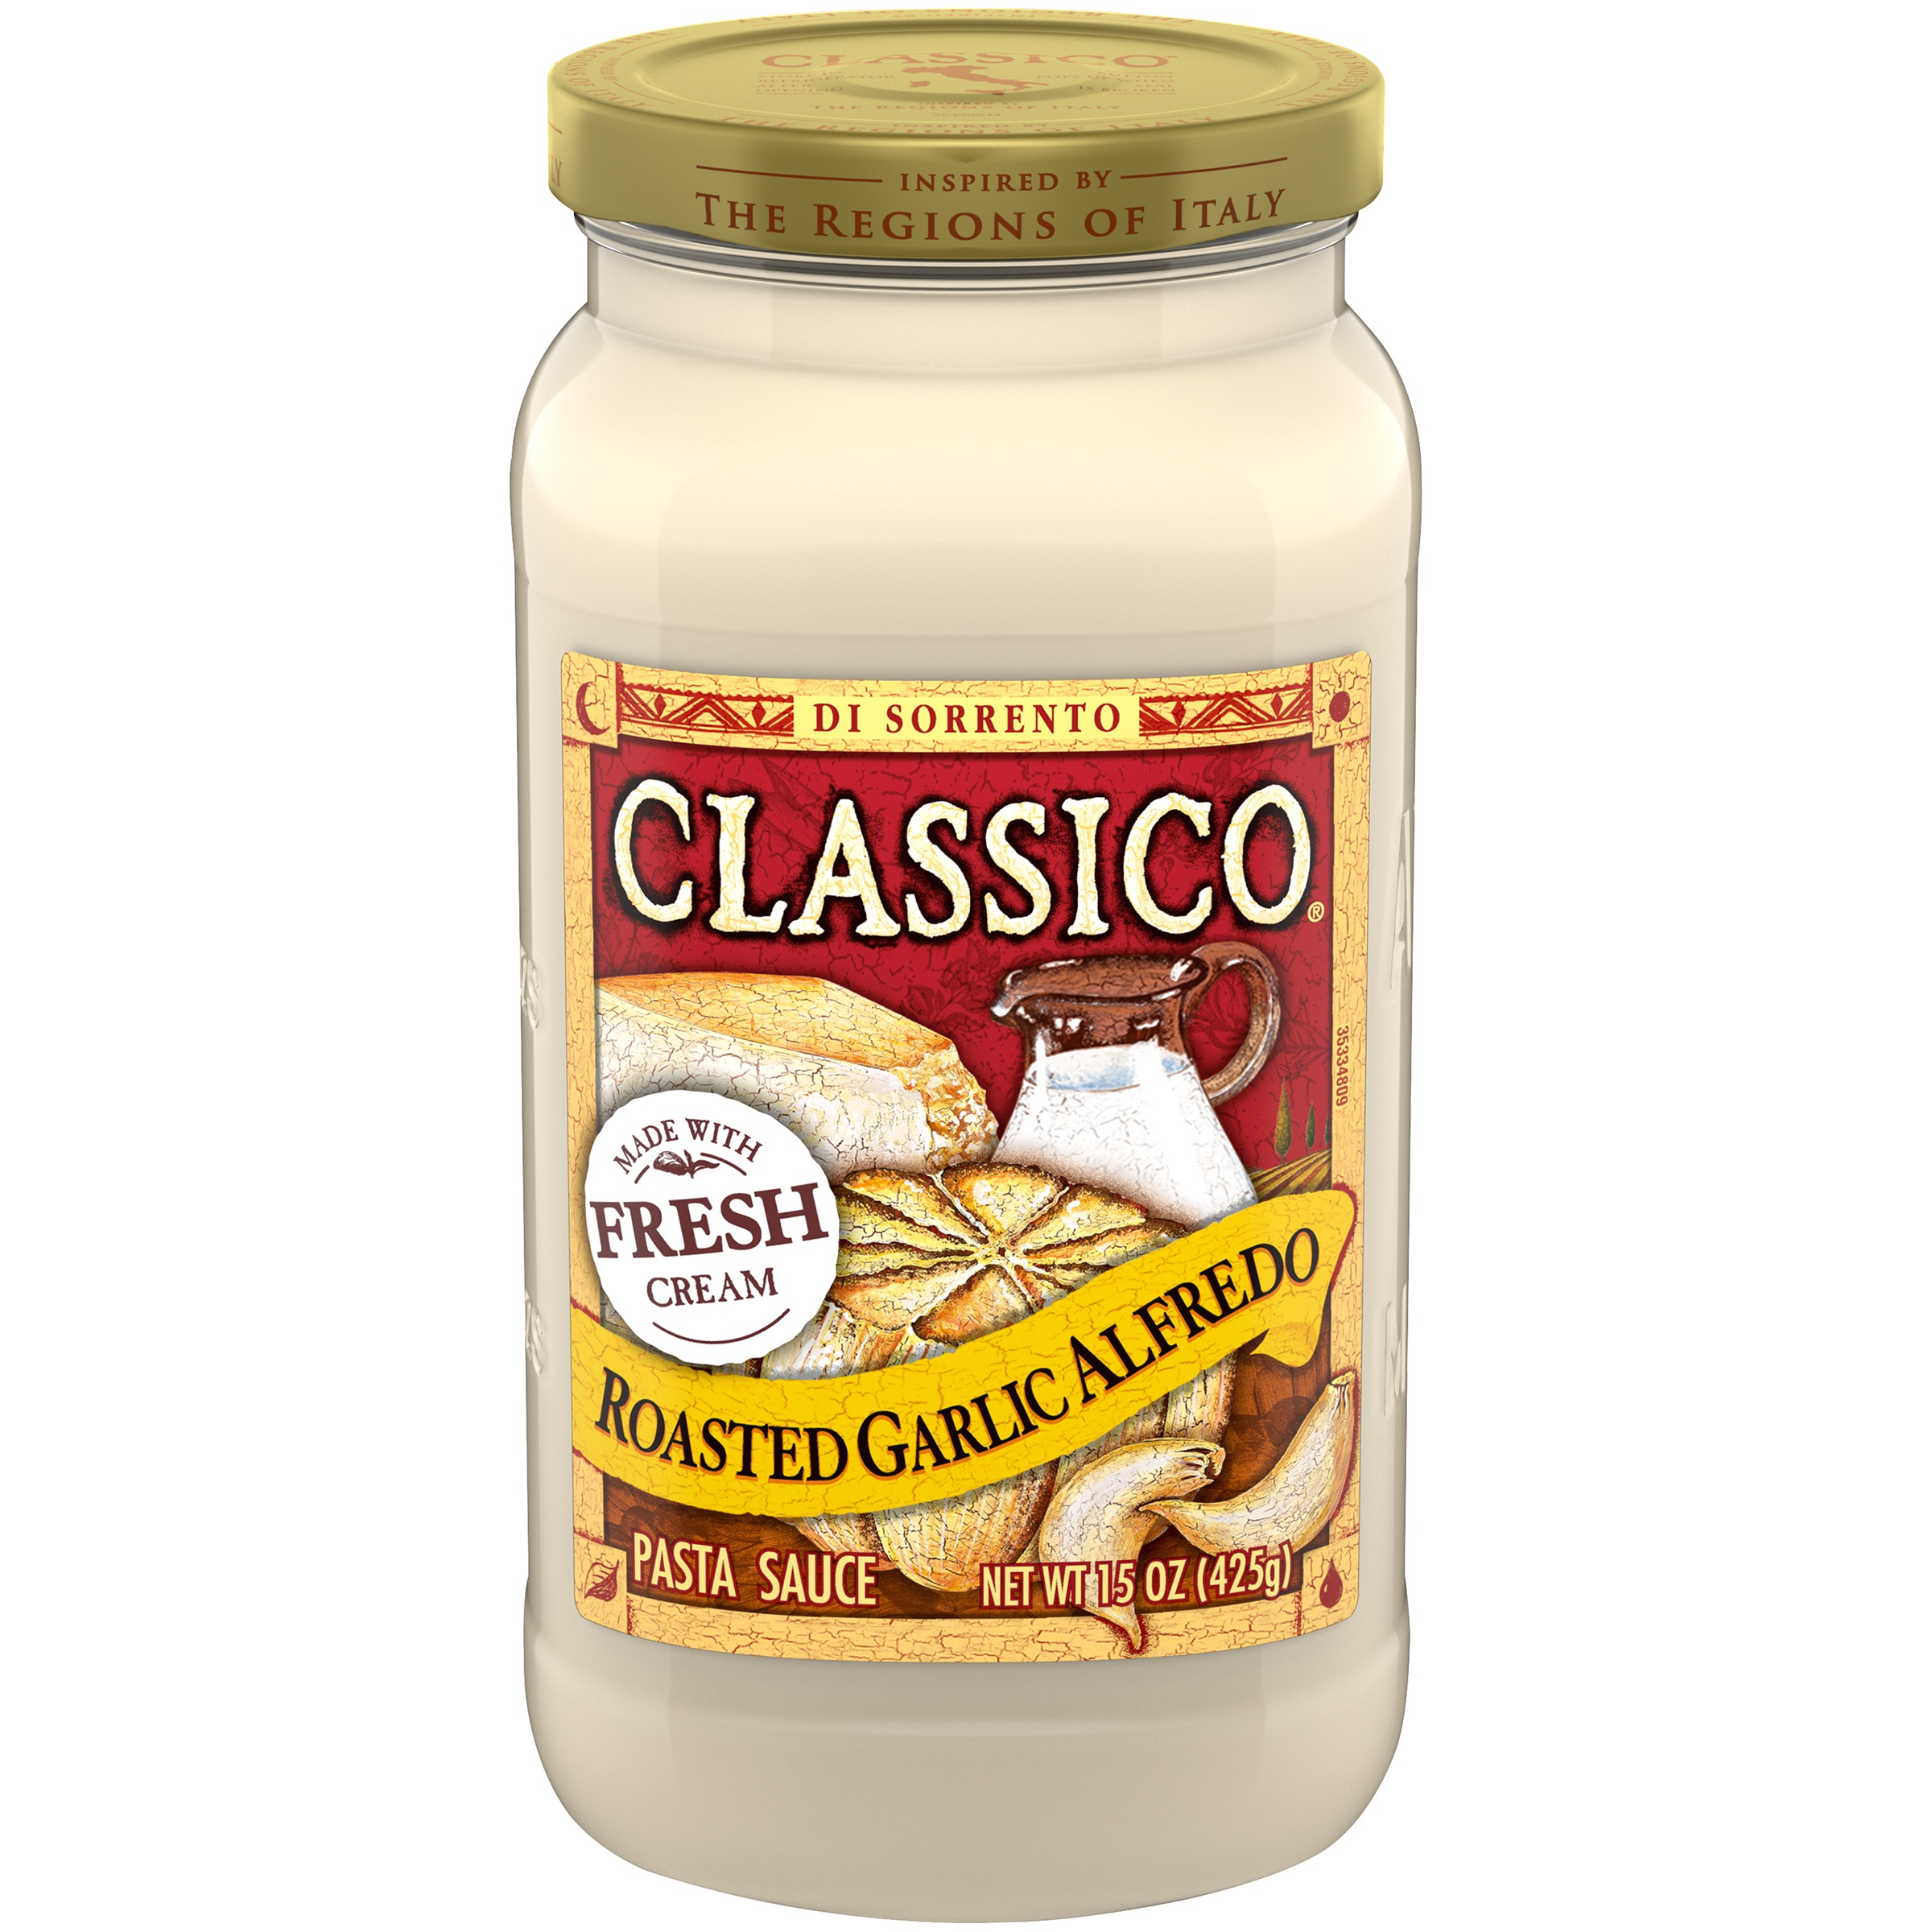 Classico Roasted Garlic Alfredo Pasta Sauce 15 oz. Jar